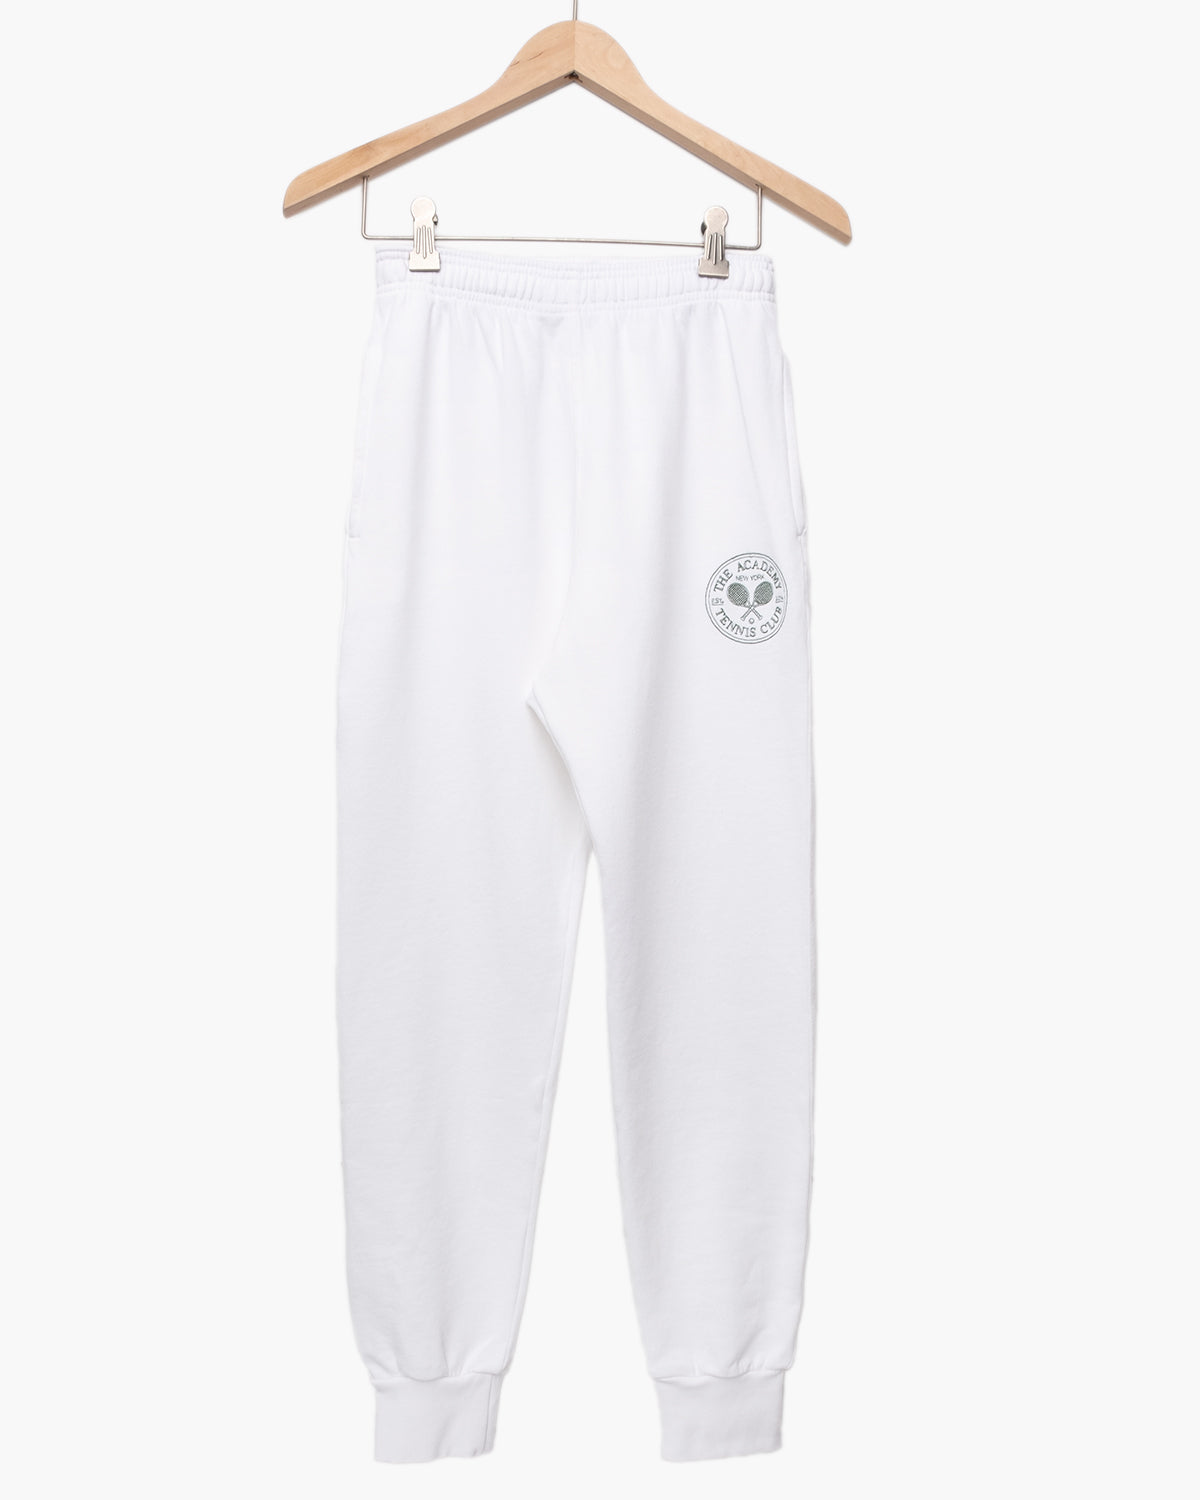 The Academy New York Fitted Sweatpant